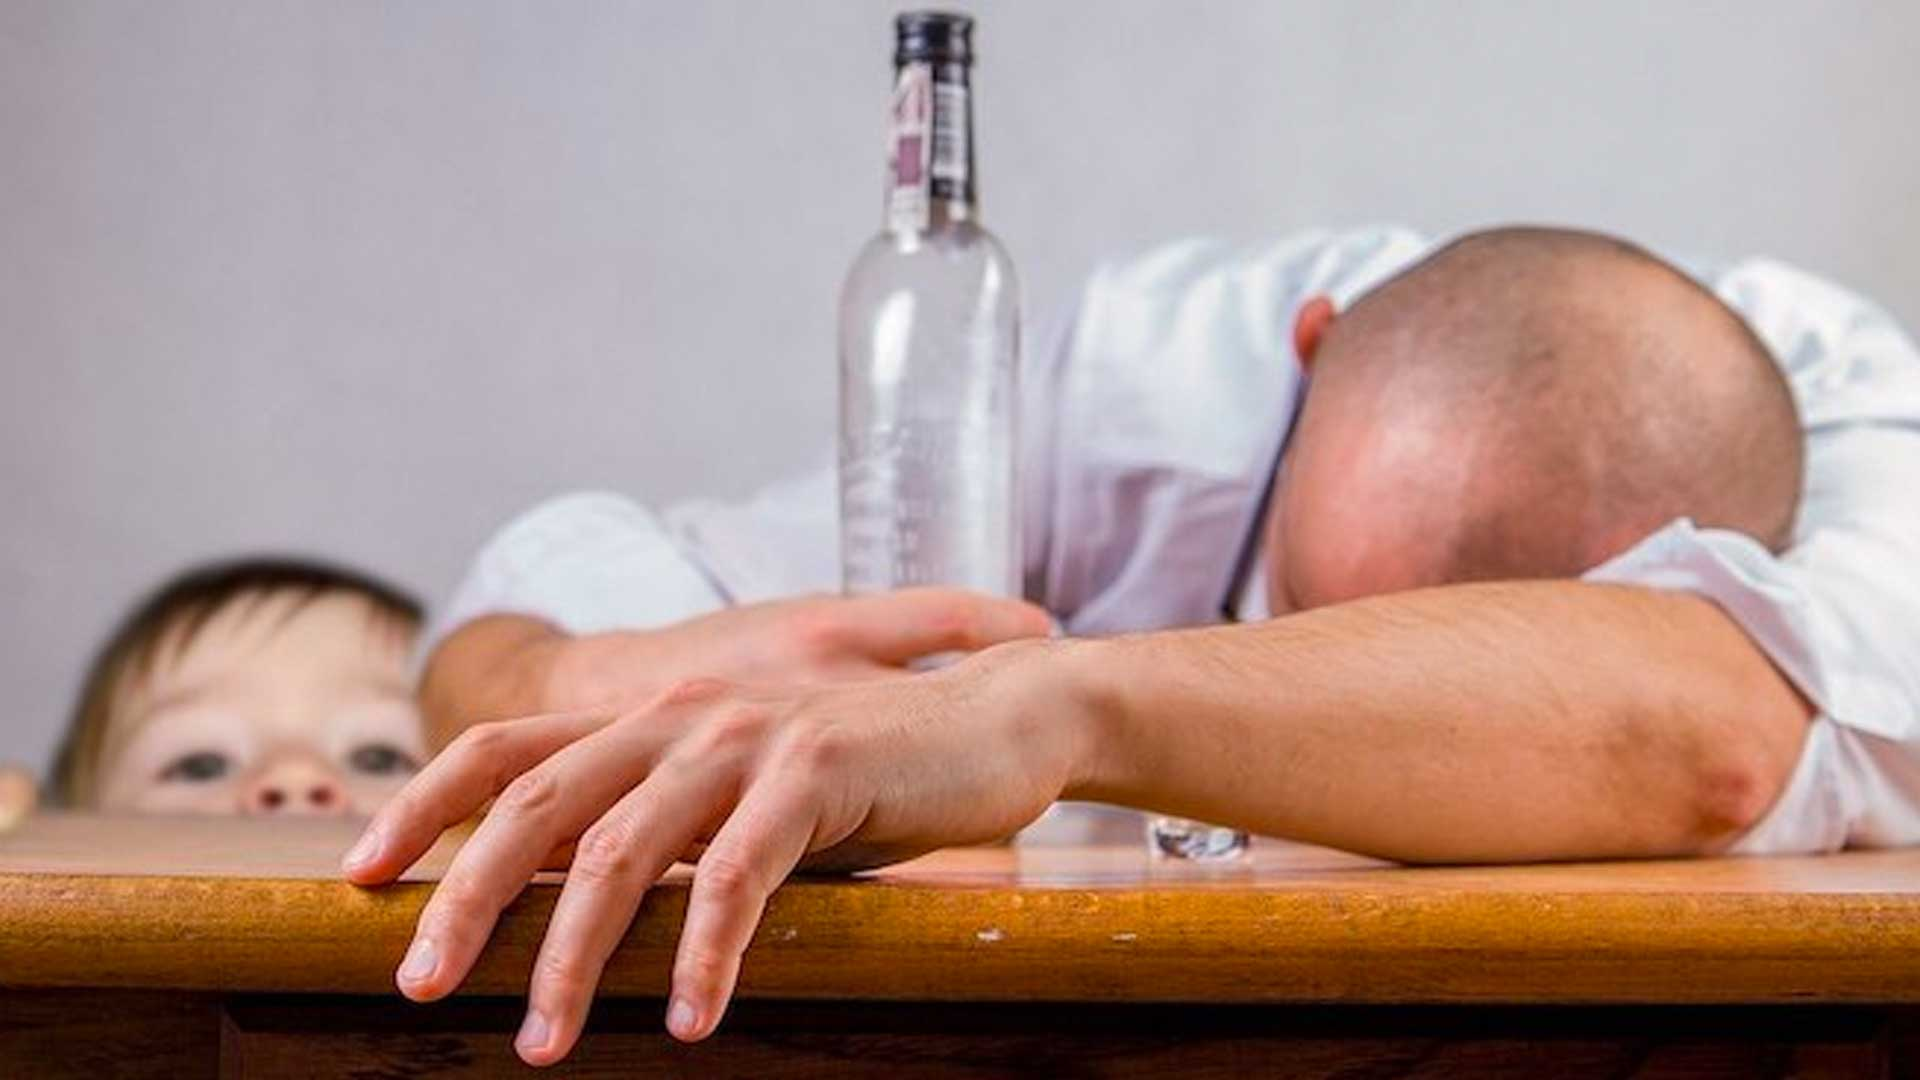 Alcoholism and Pyrrole Disorder: The Missing Link